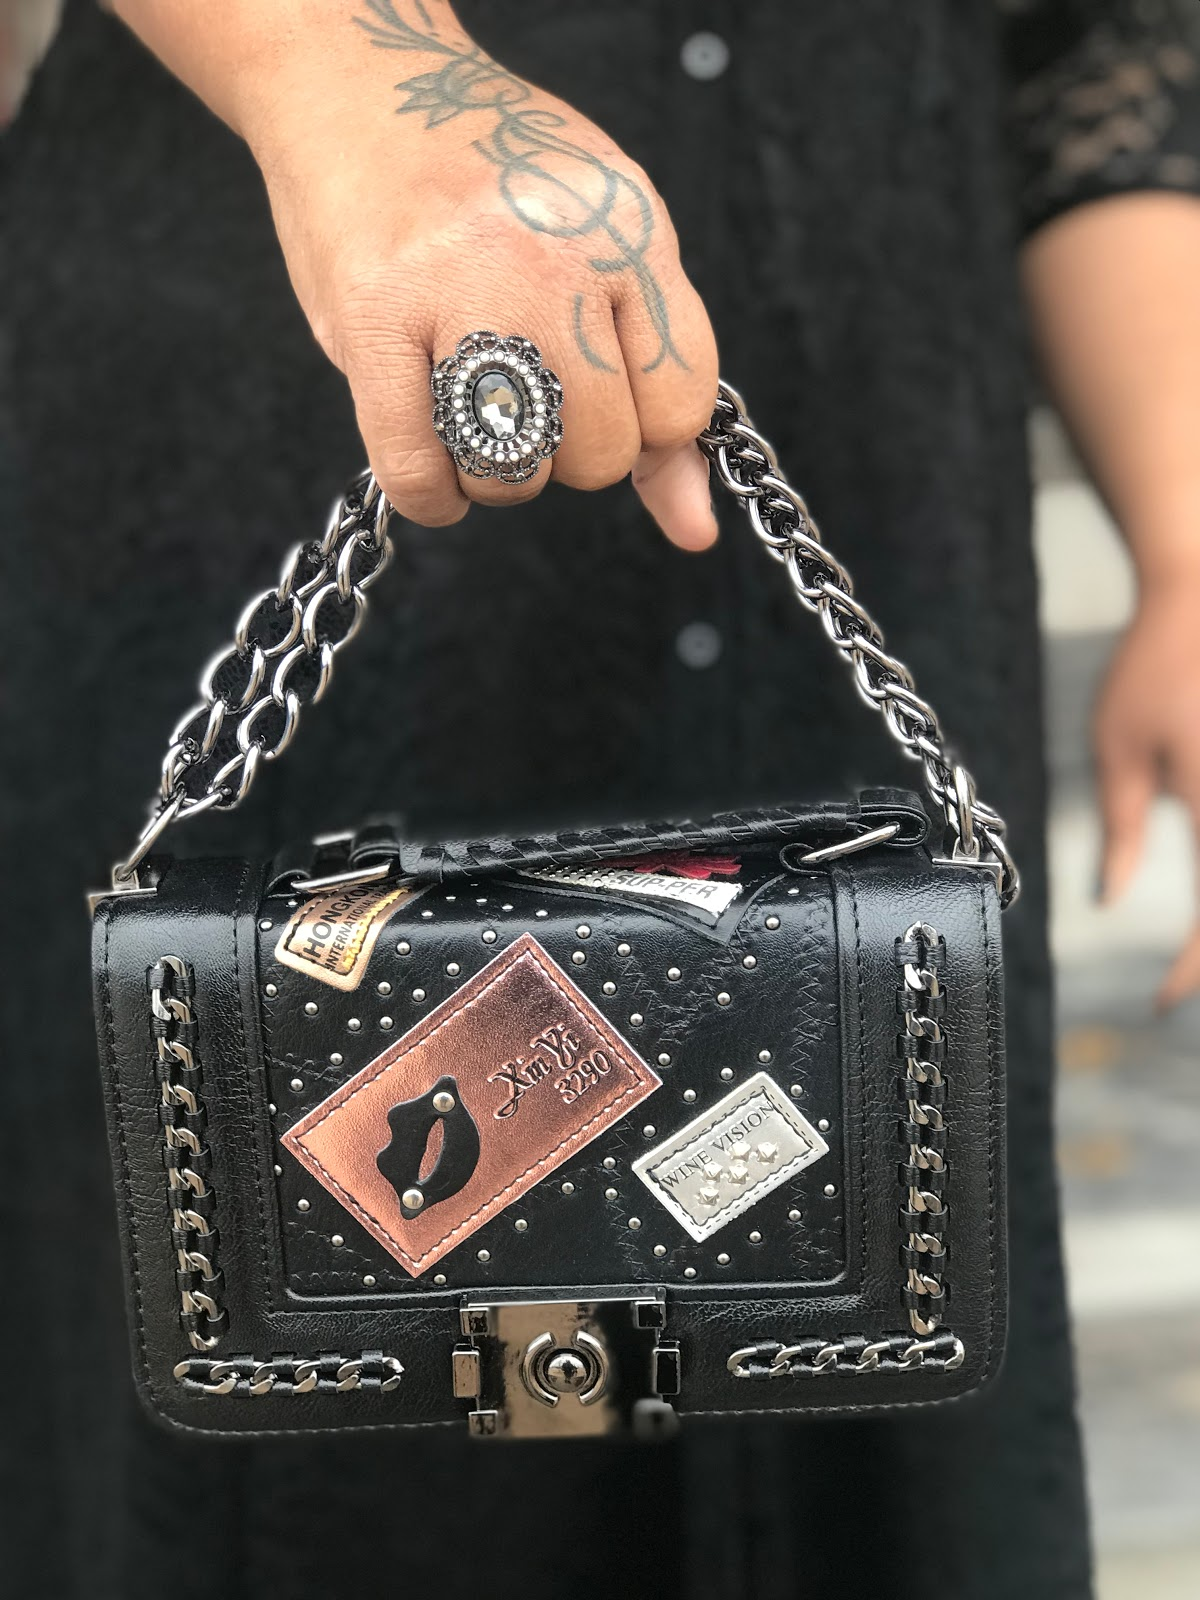 Image: Woman sharing her love and style for trendy accessories that look good on older women